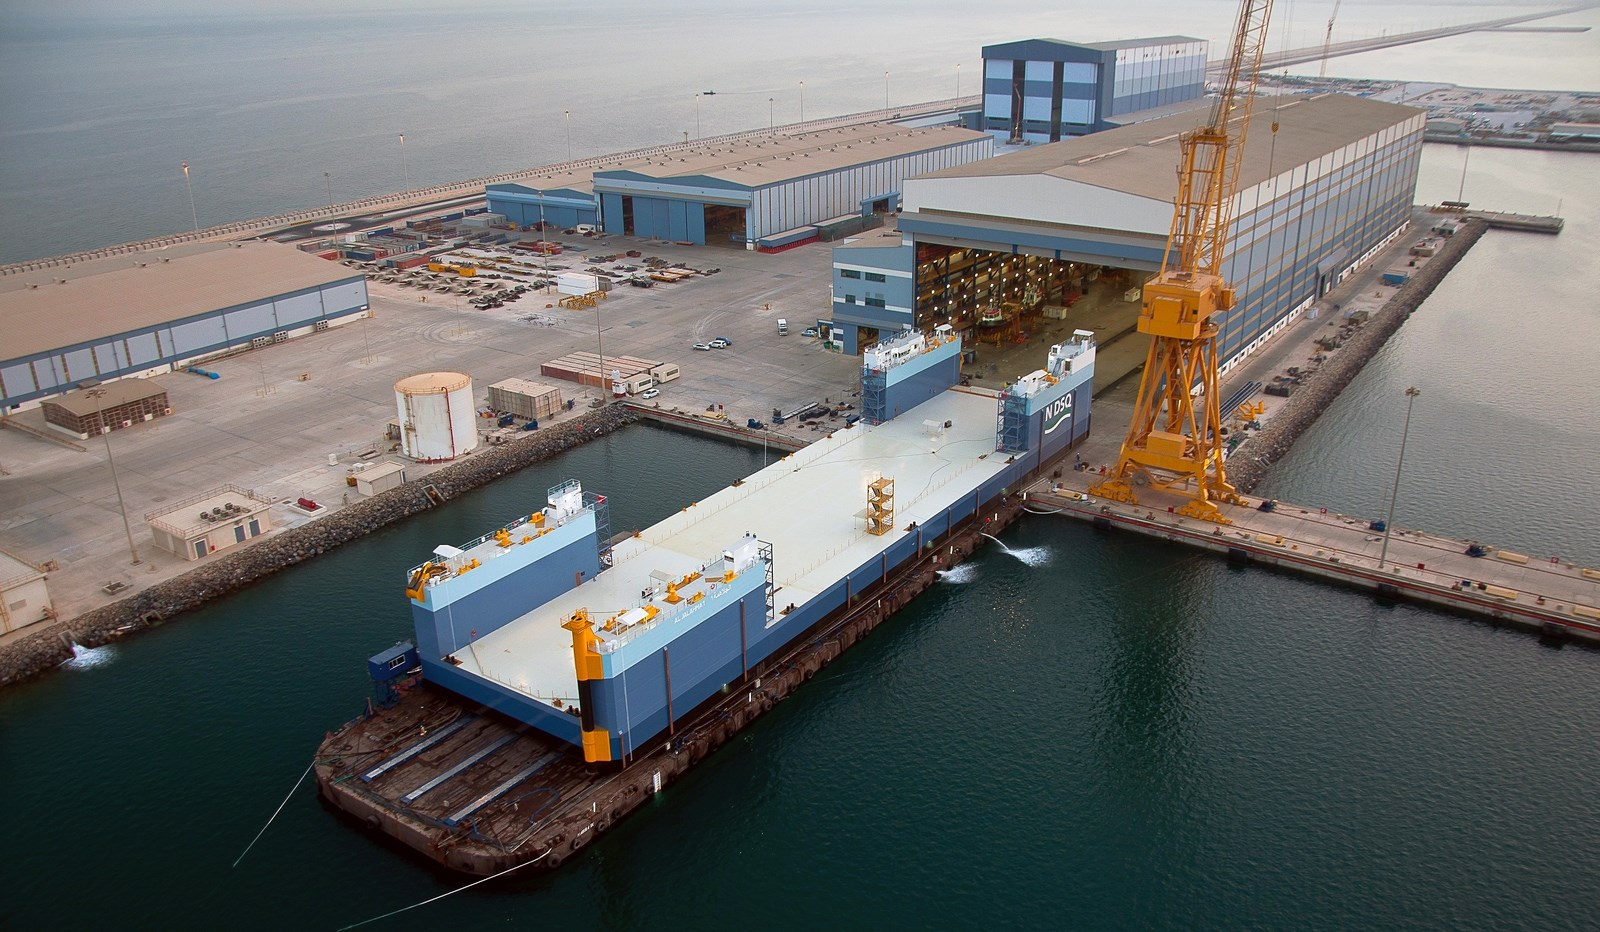 the damen loadout recovery barge is designed to loadout and recover vessels